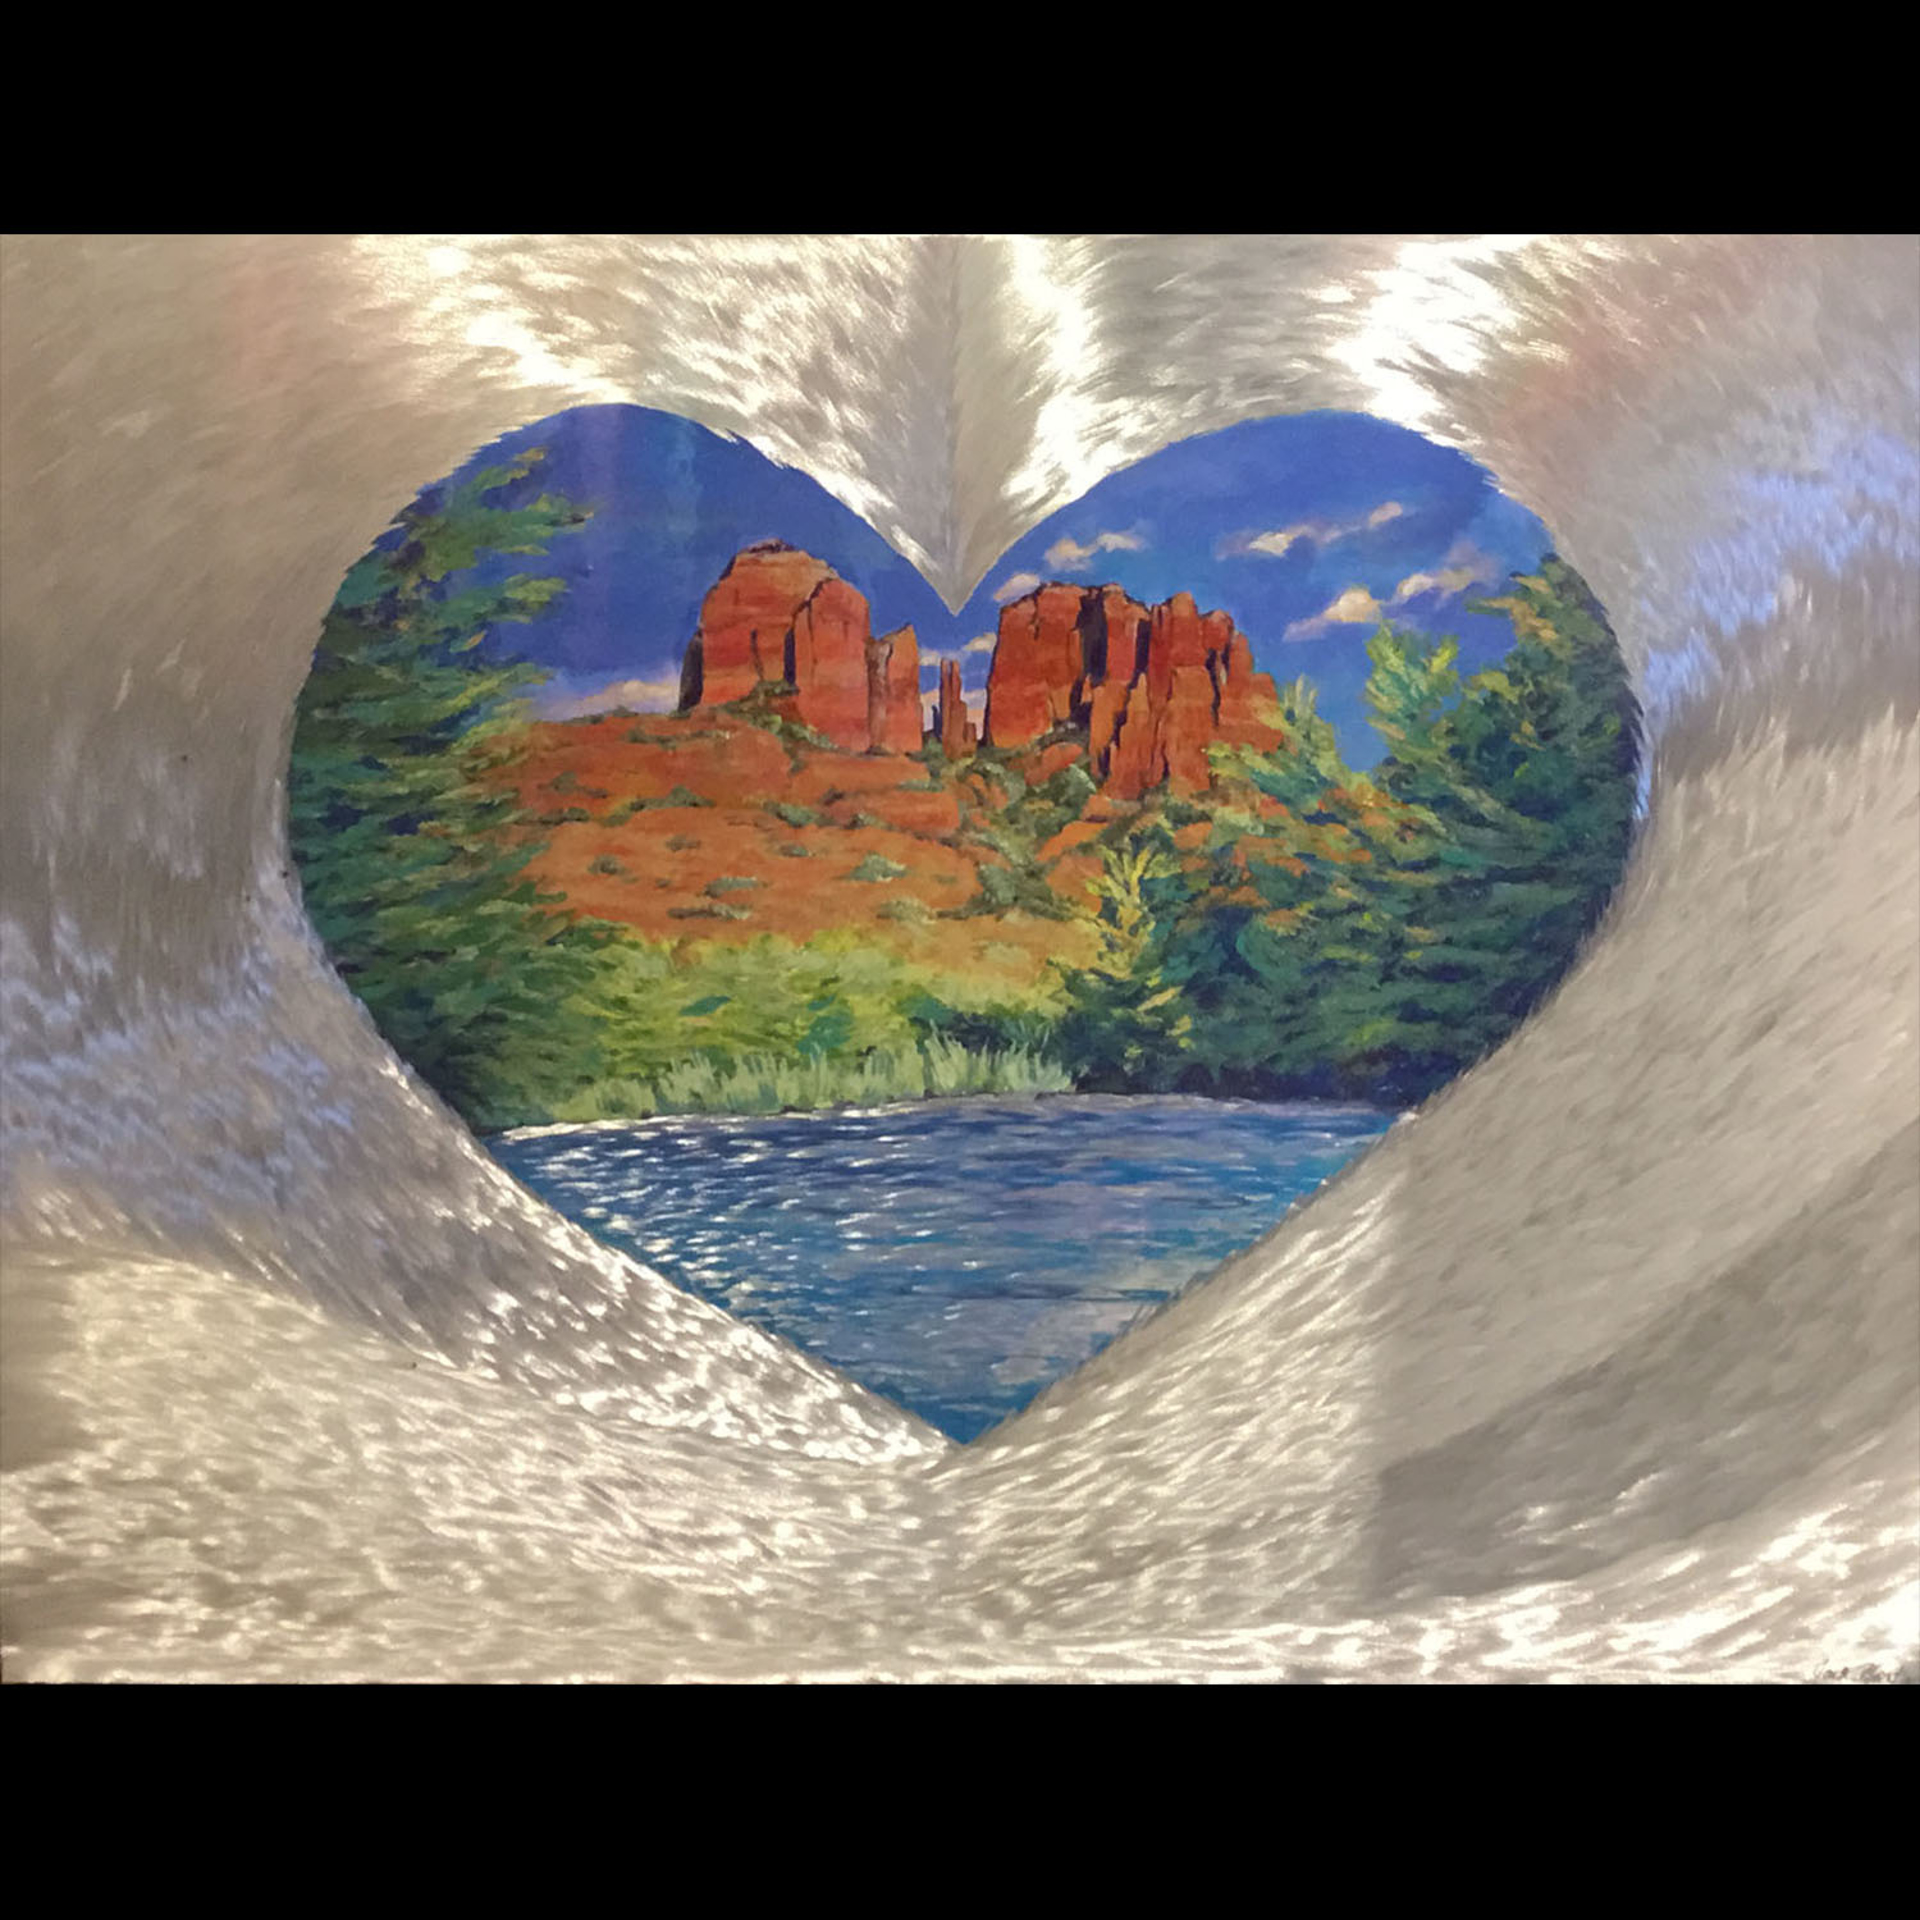 Sedona Vortex of Love by Jack Nordby